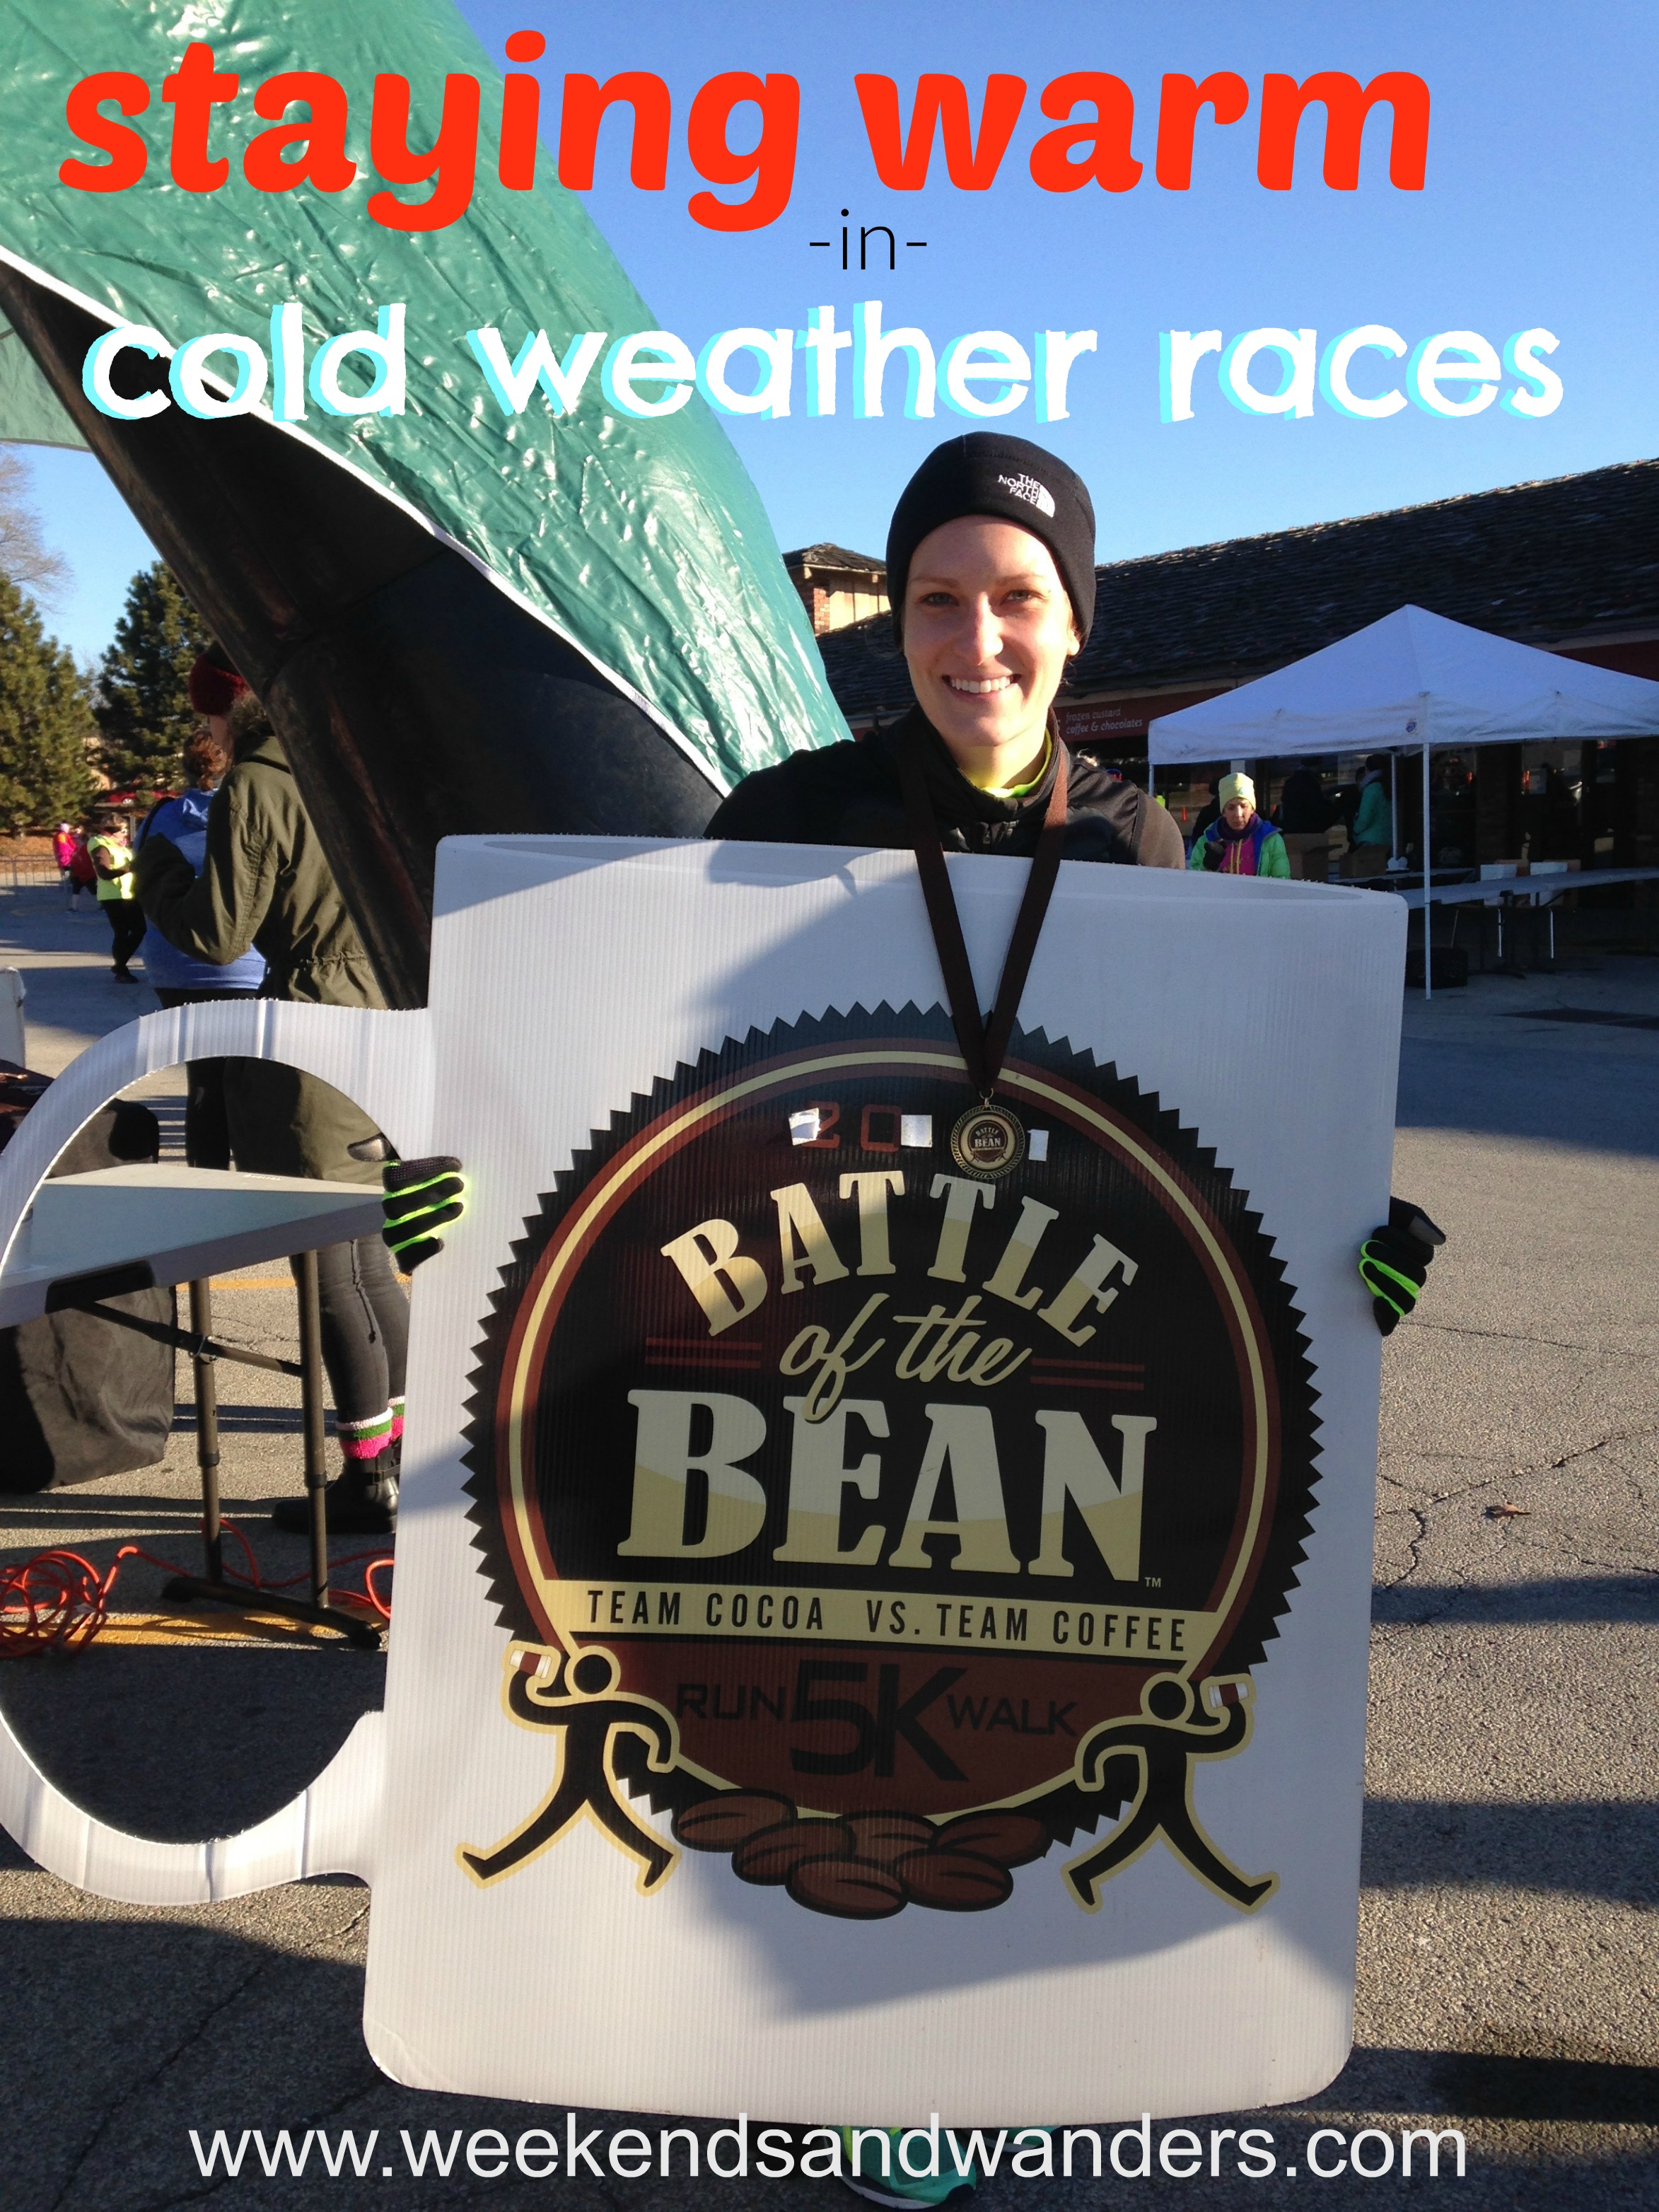 5K races in 11 degree weather? No problem! With the right gear you can stay warm and have a great time in cold weather races! Read all about it at Weekends & Wanders